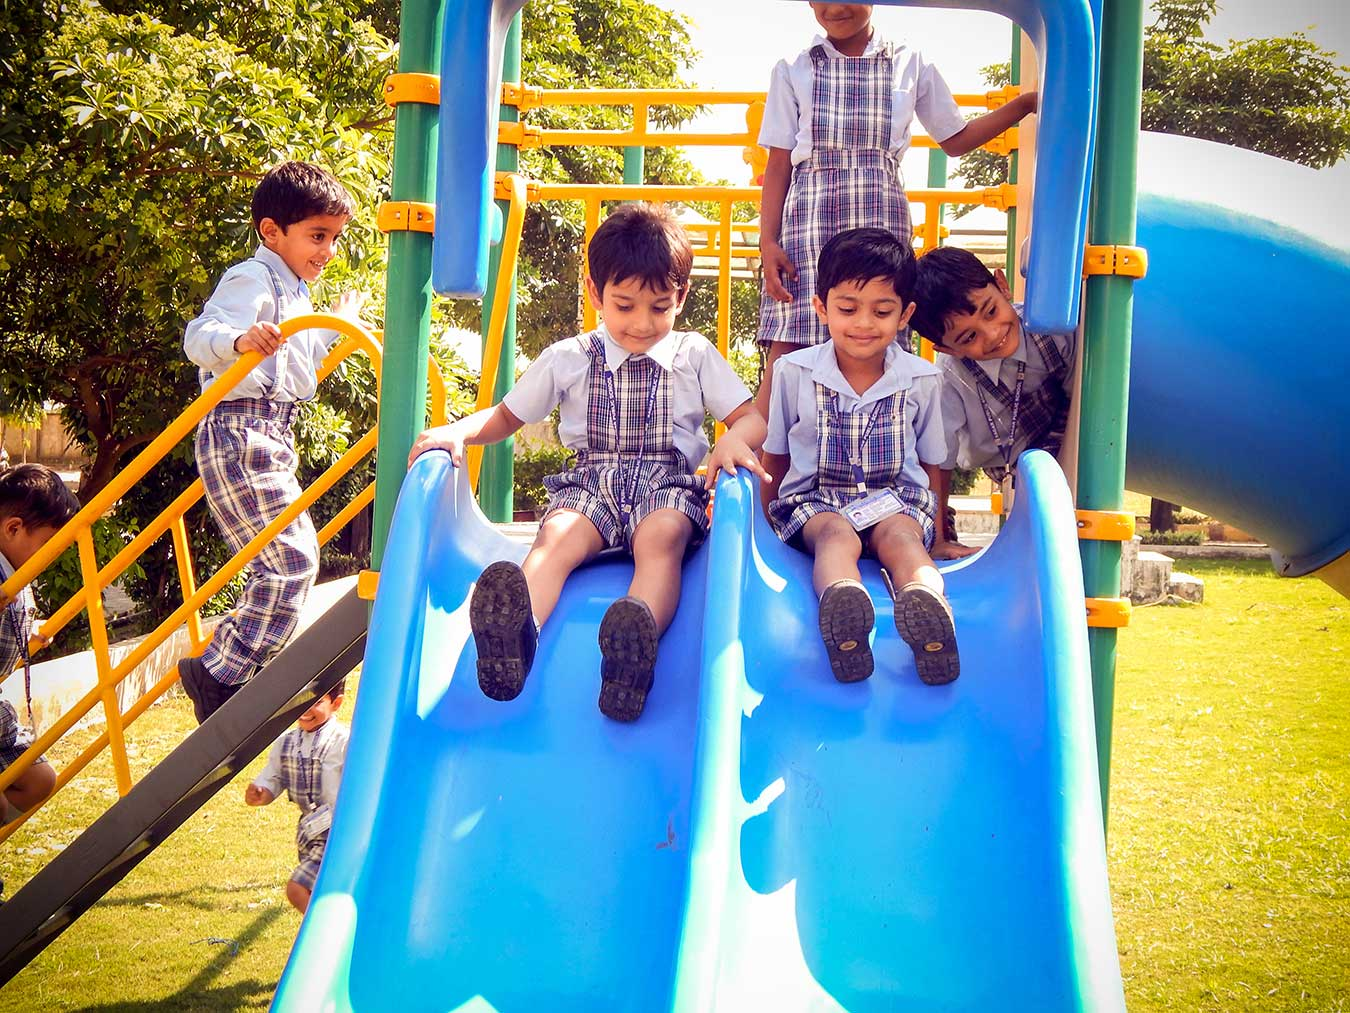 swings and playground at sagar public school ratibad, top cbse schools in central india, day boarding schools in bhopal, boarding schools in bhopal